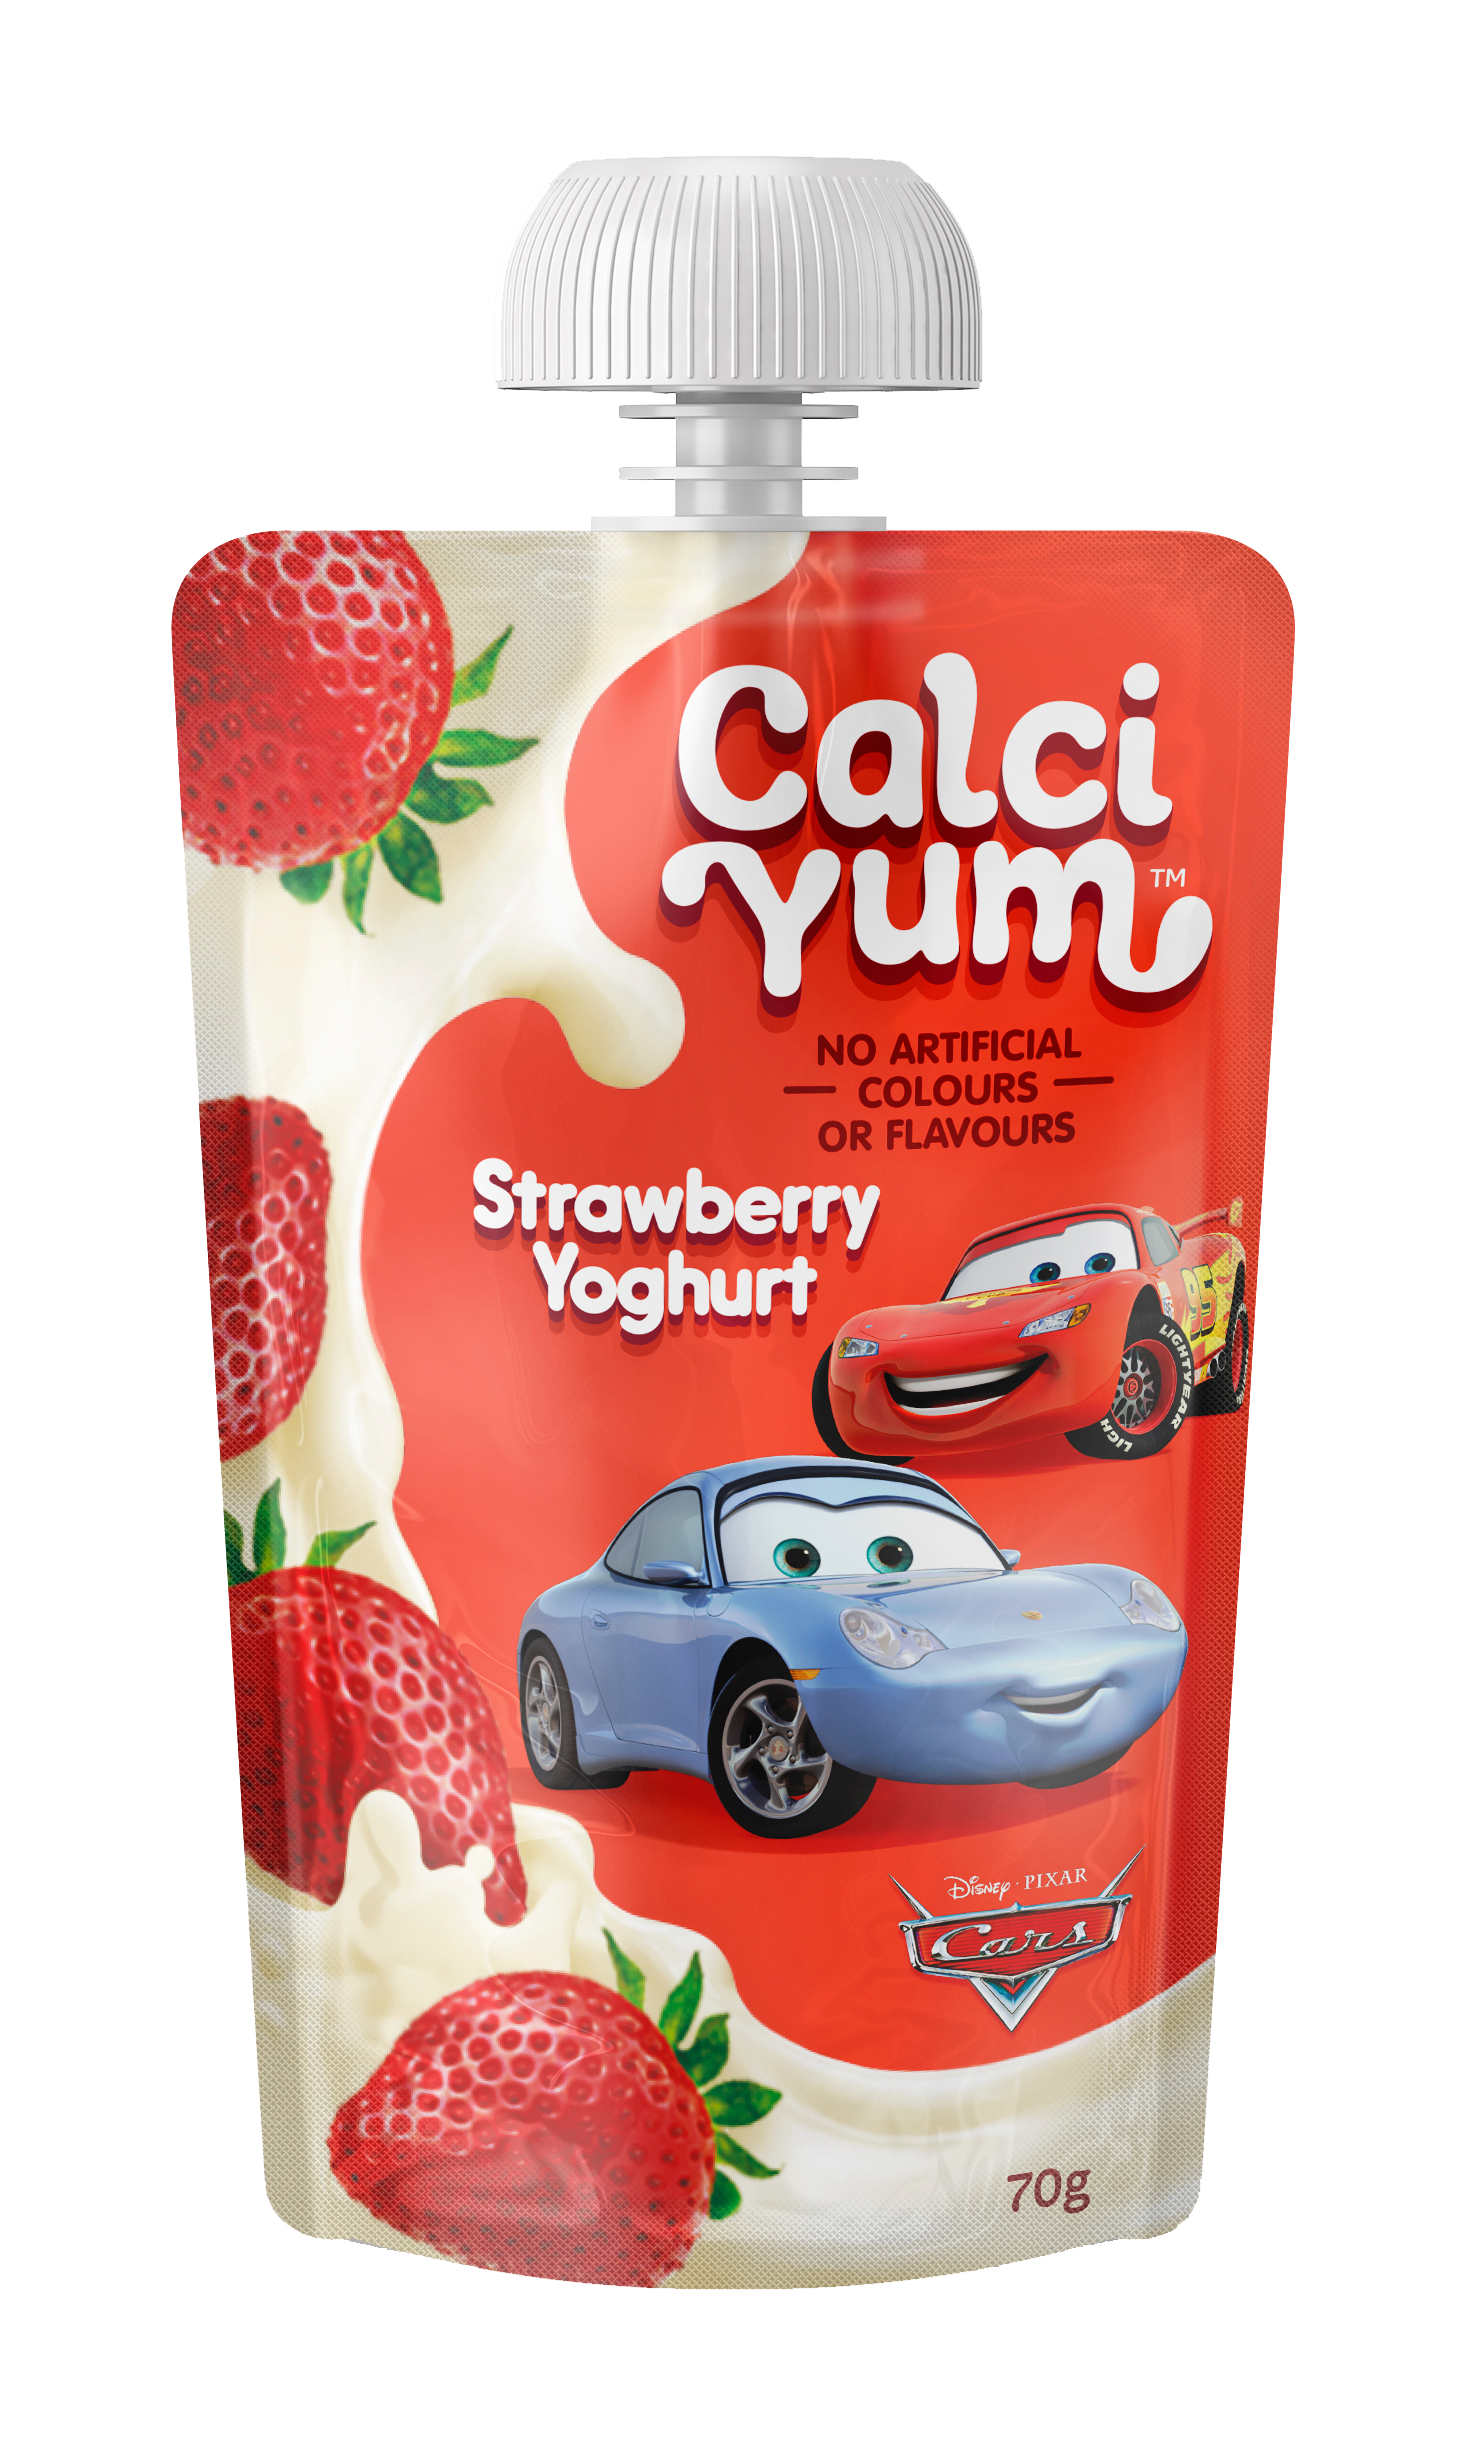 Milk clipart pouch. Calciyum yoghurt for kids